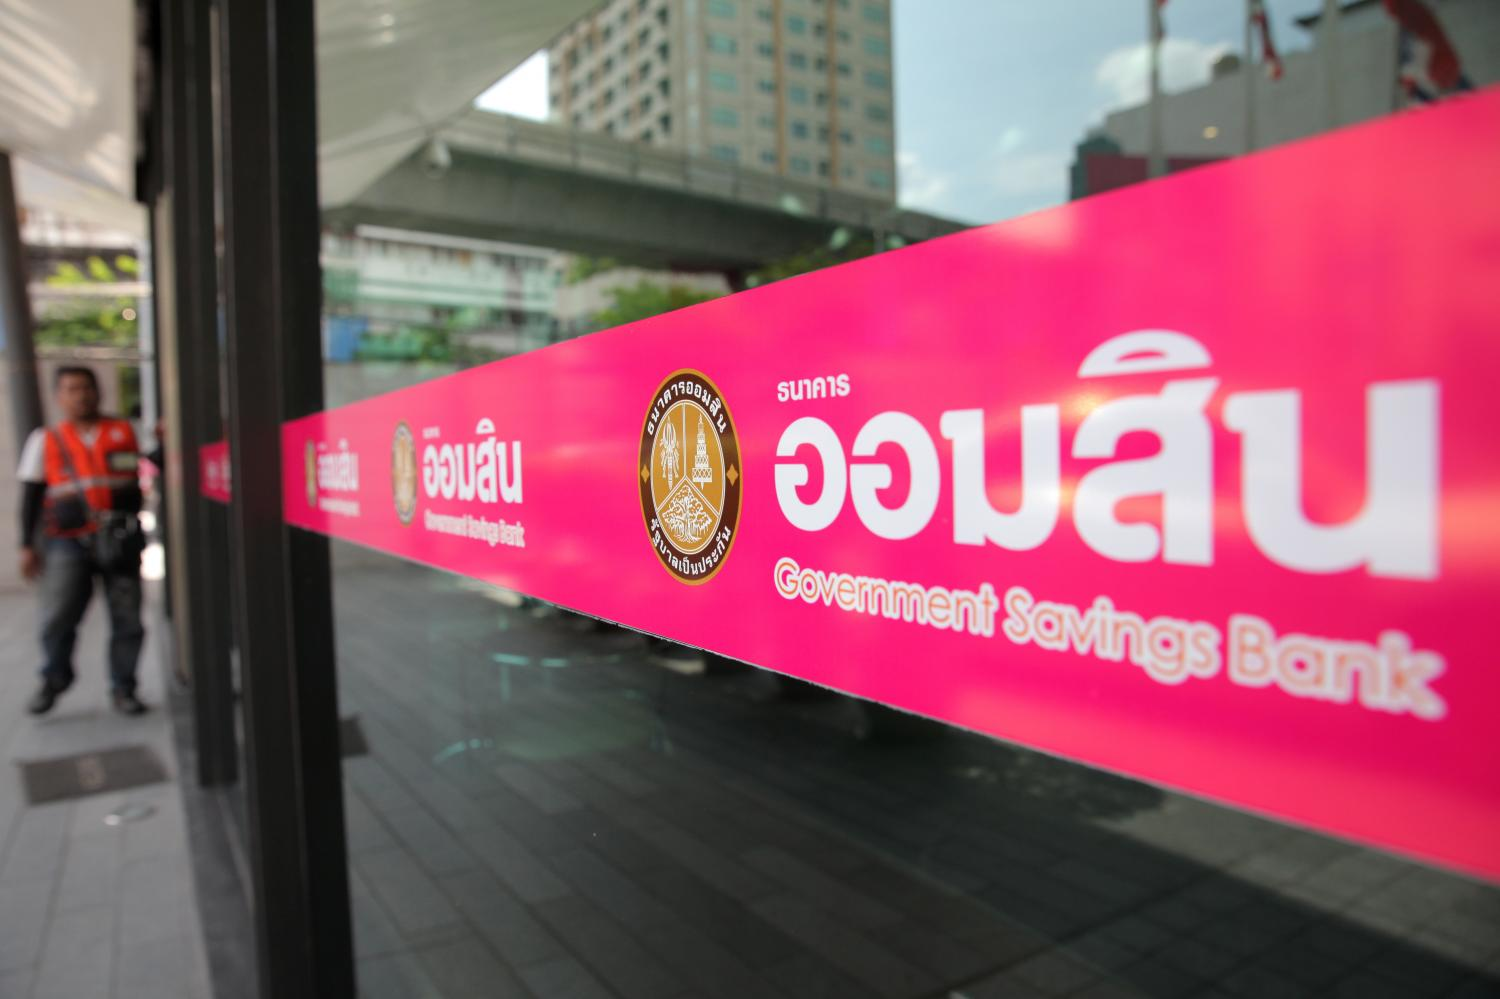 GSB is among those required to adopt the ceiling SLL.(Photo by Wichan Charoenkiatpakul)